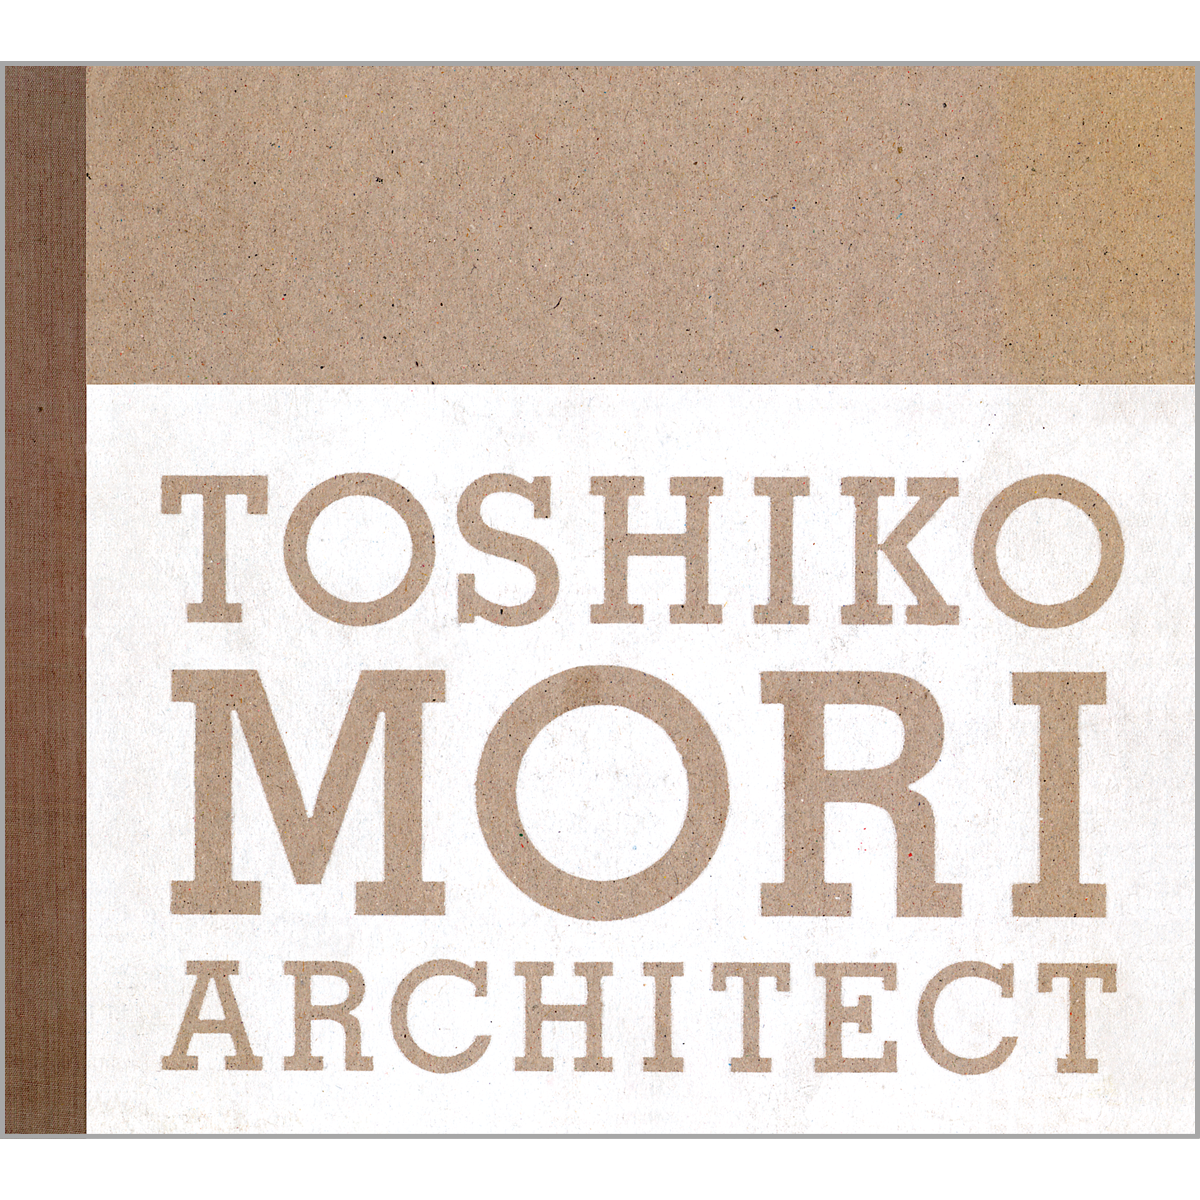 Toshiko Mori Architect